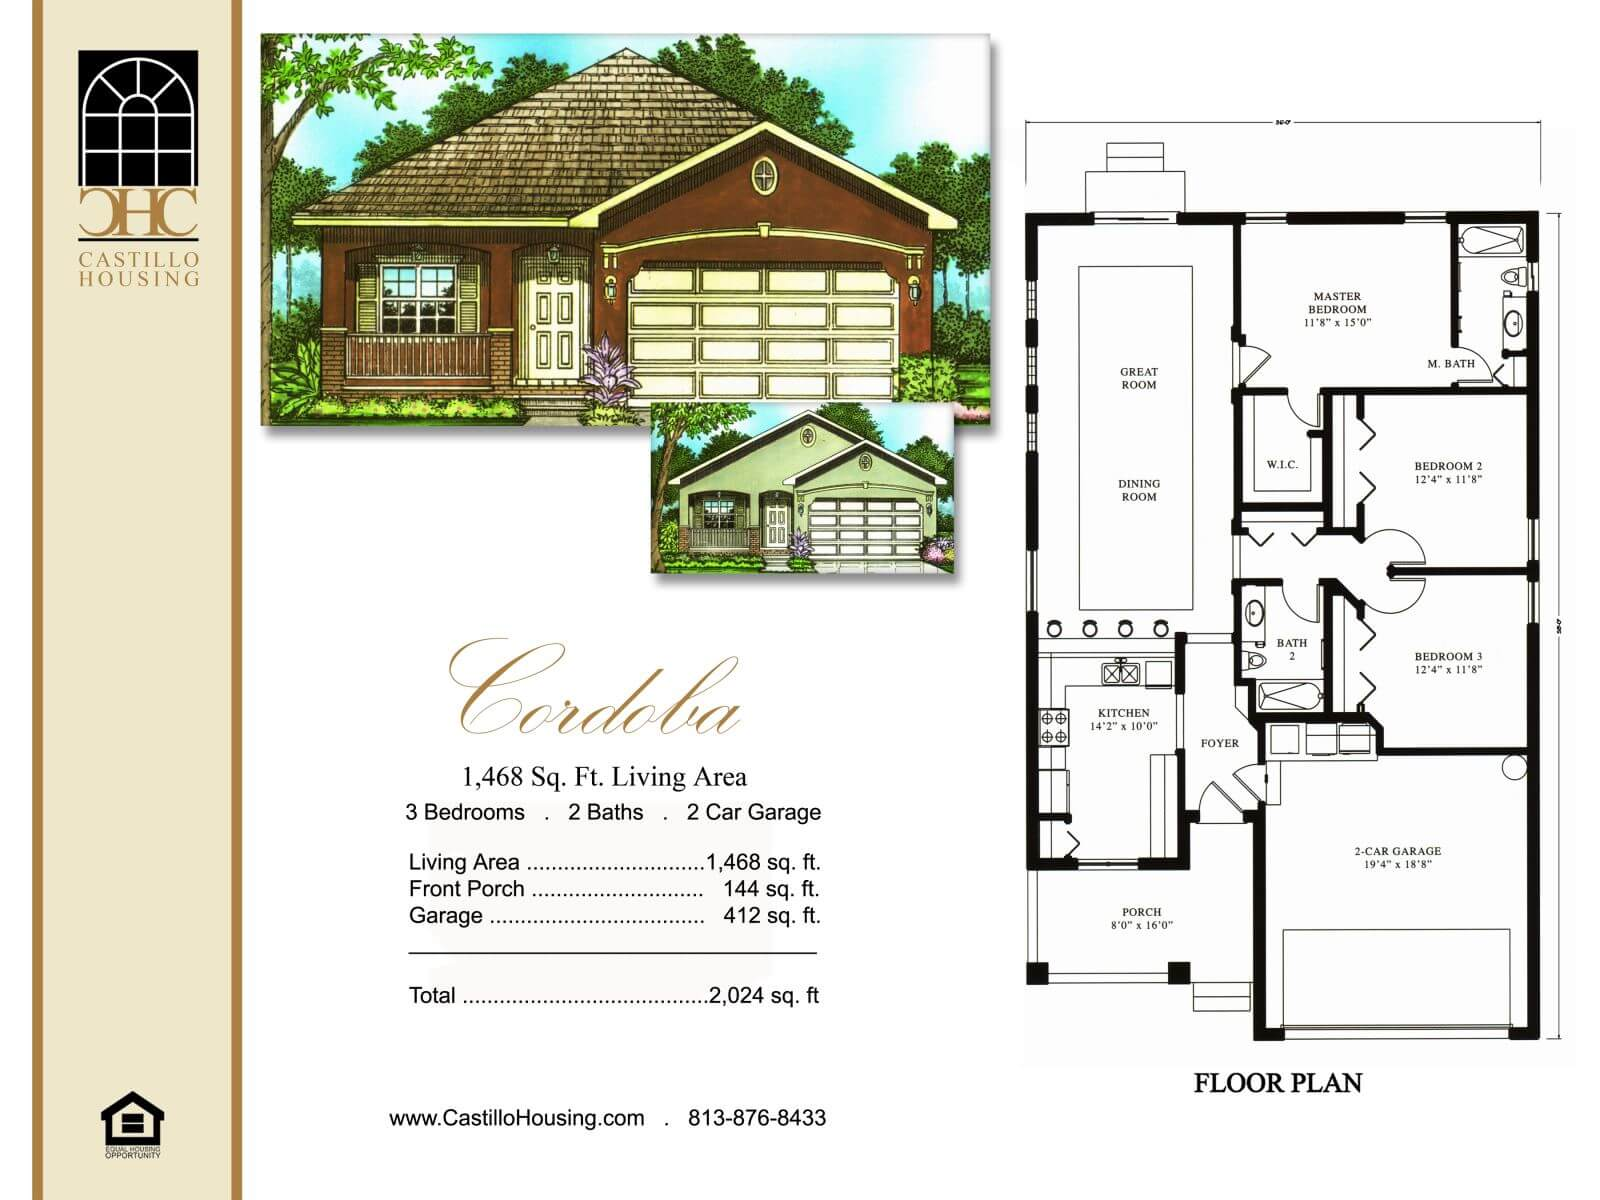 Floor Plans,1,001 SQ FT TO 2,000 SQ FT,1004